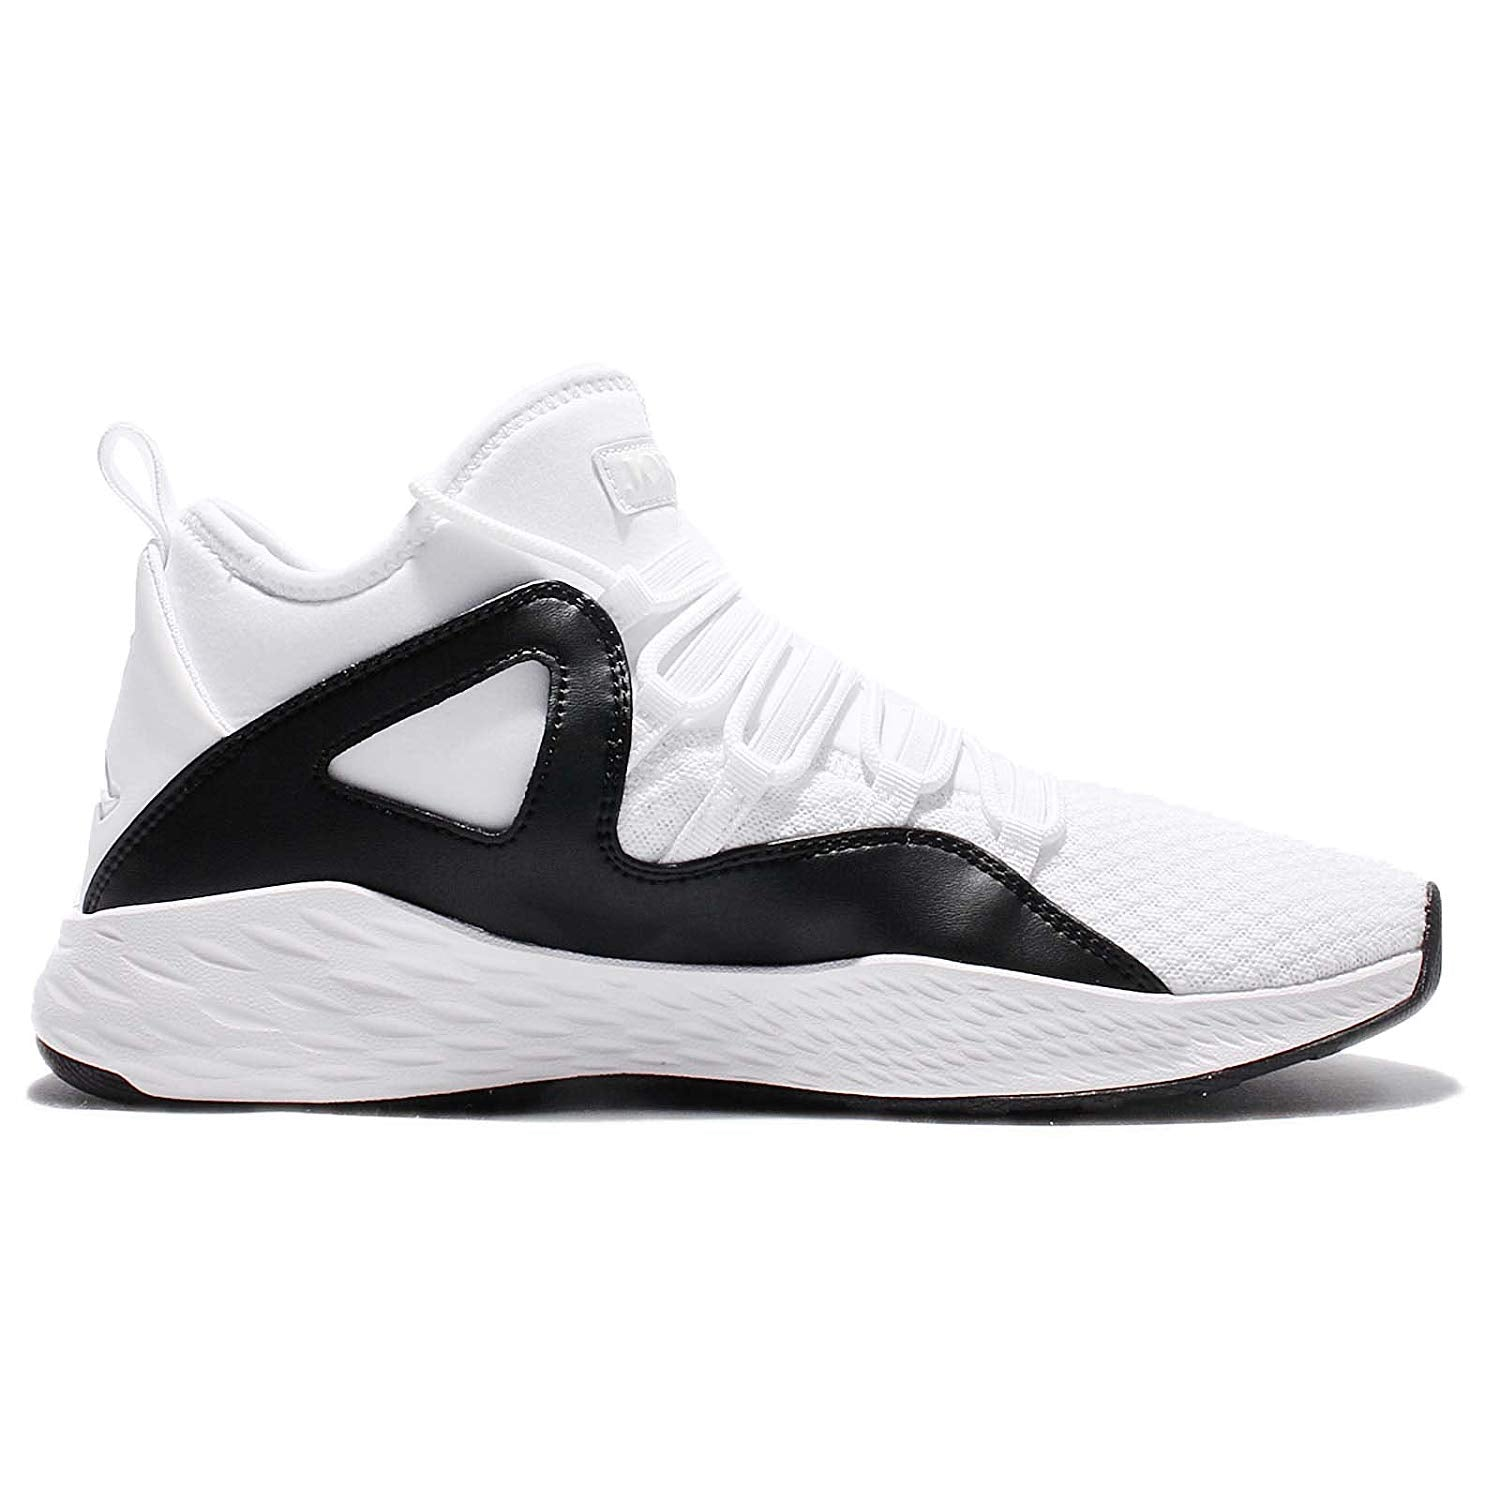 Nike Air Jordan Formula 23 White/Black Men's Basketball Shoes Size 9.5